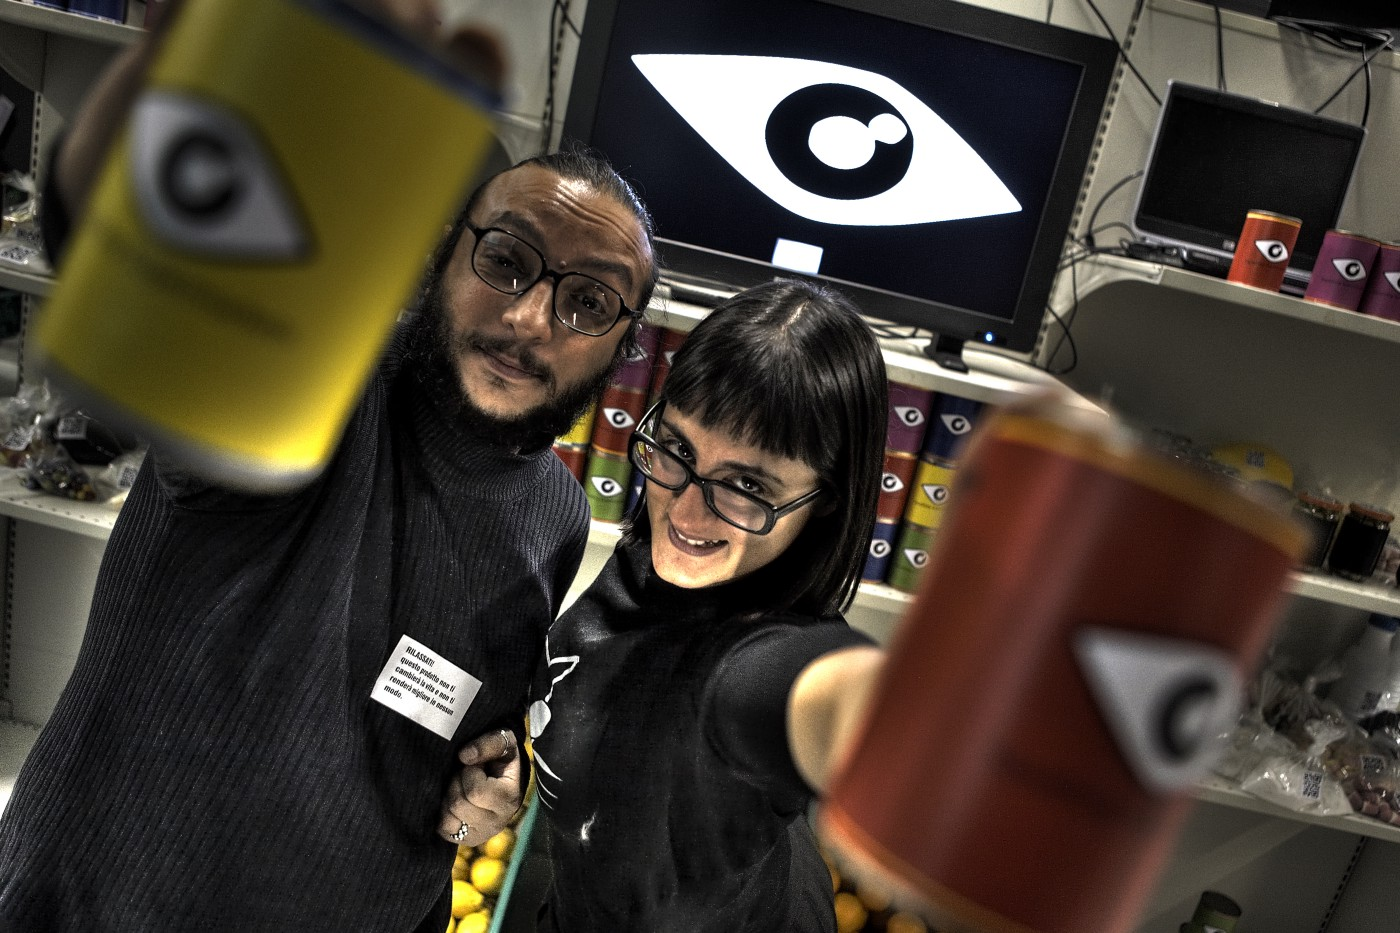 Squatting Supermarkets: Oriana and Salvatore at To Share Festival 2009